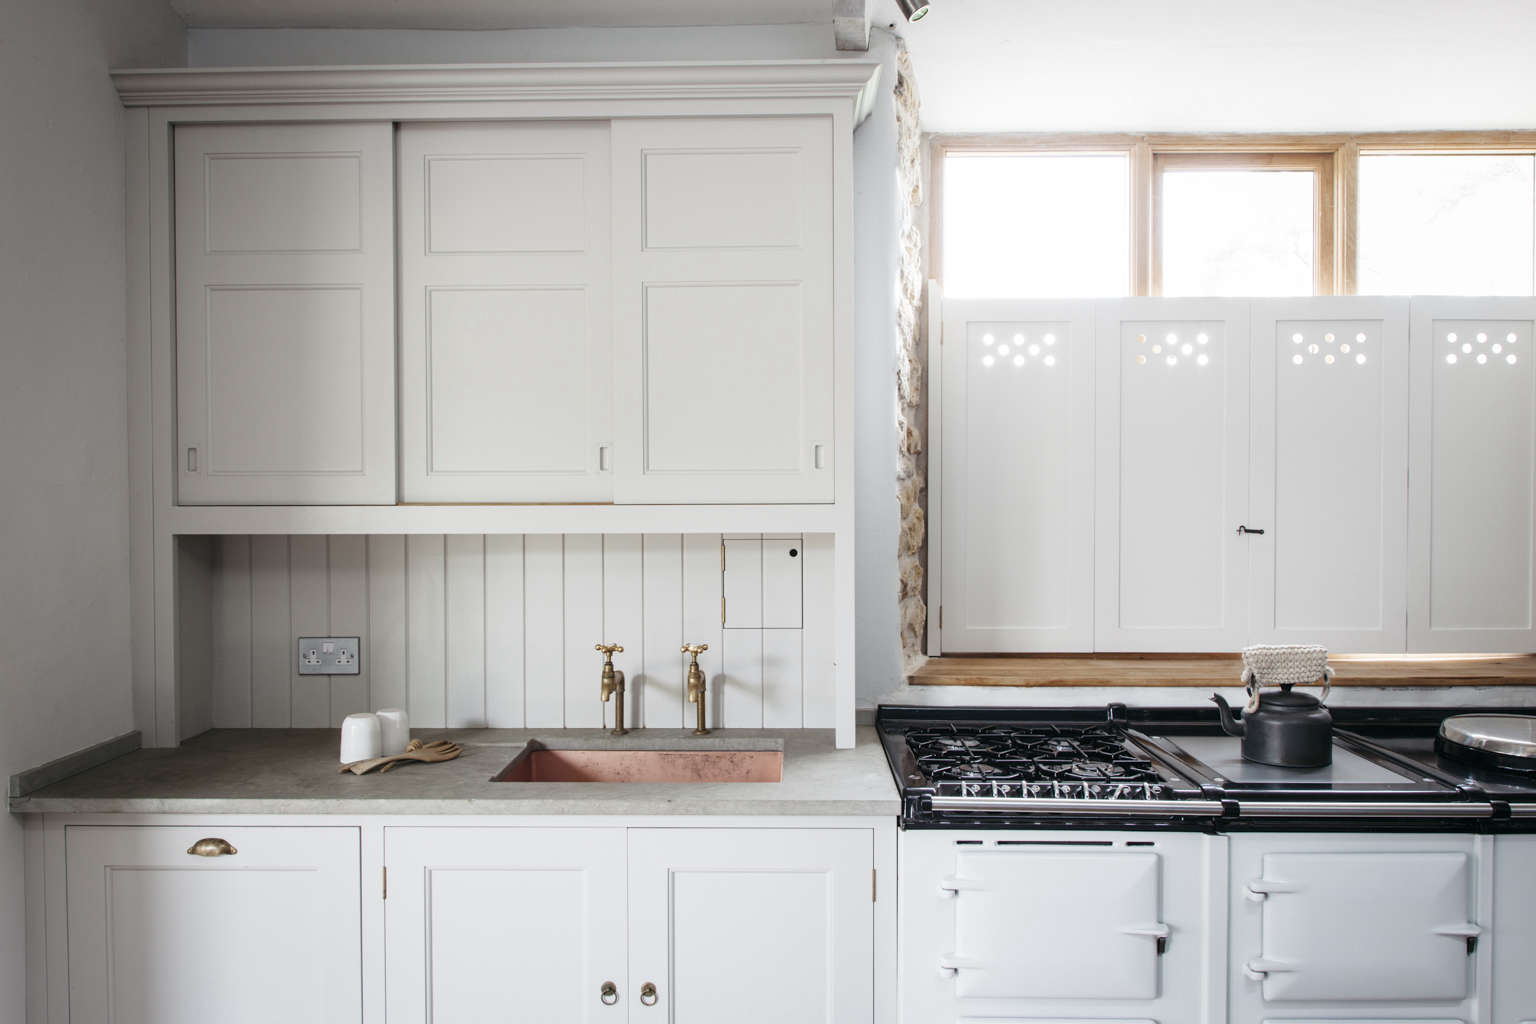 Kitchen of the Week: The Plain English Power in Numbers ...